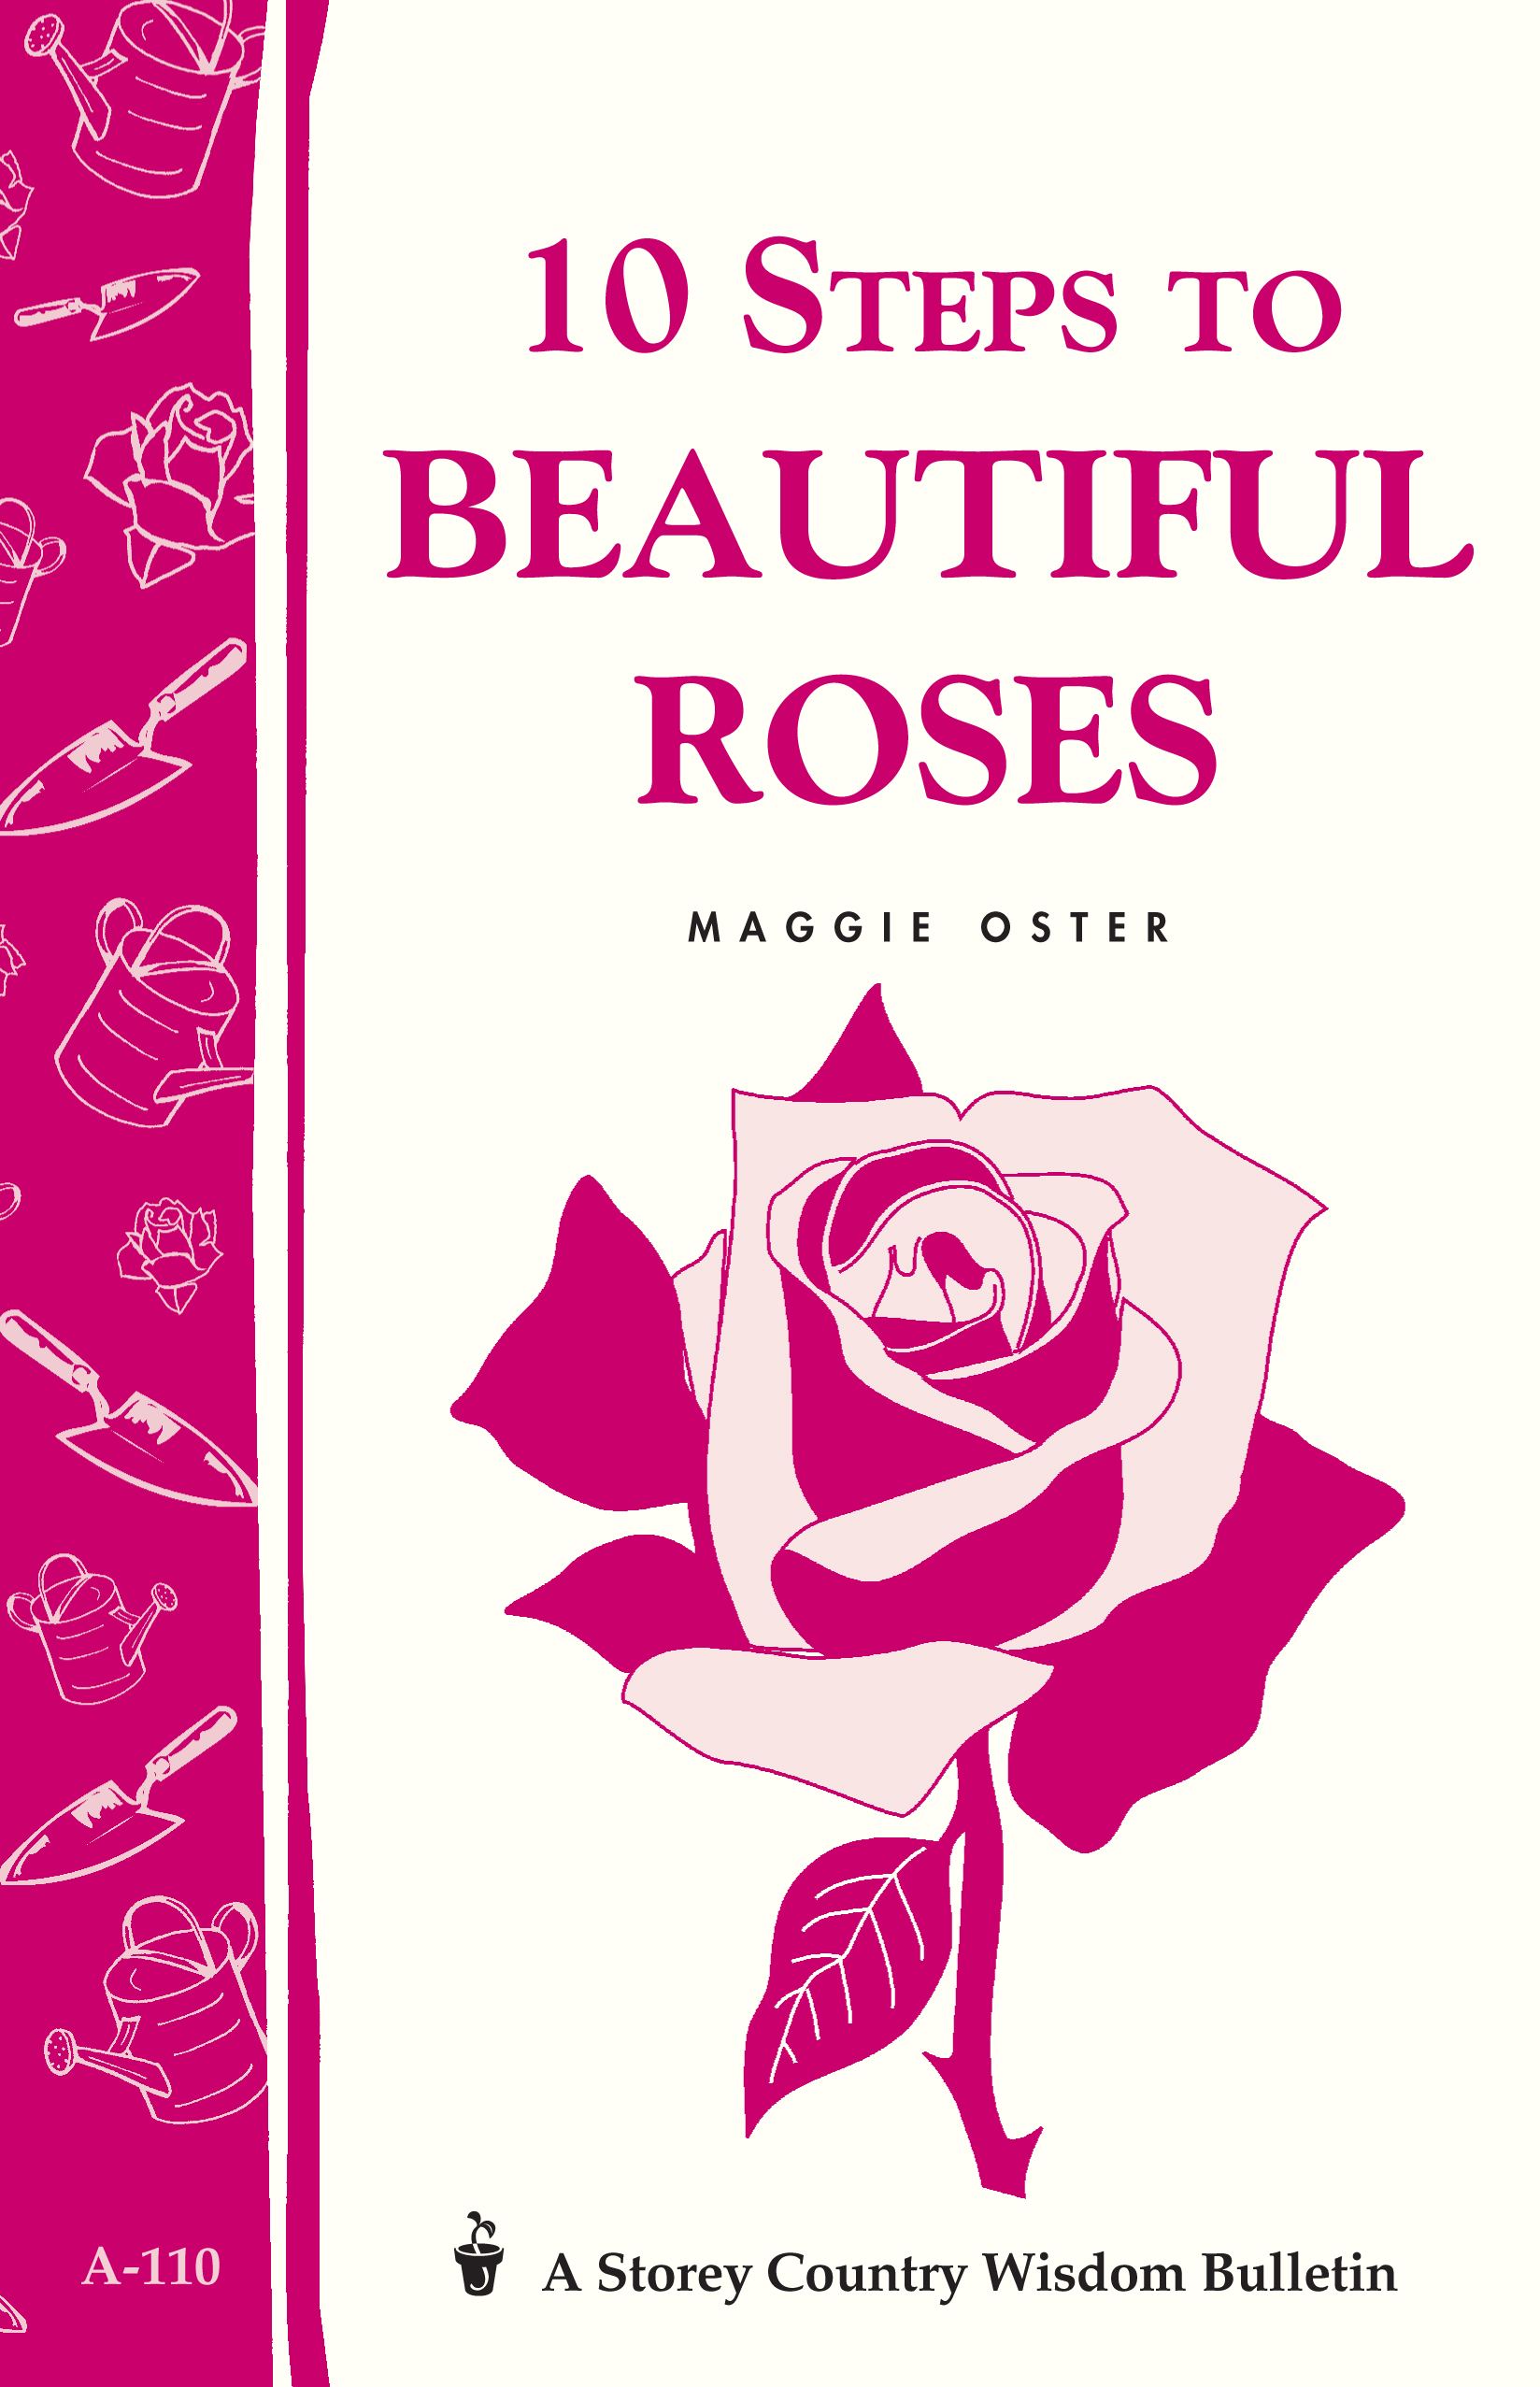 10 Steps to Beautiful Roses Storey Country Wisdom Bulletin A-110 - Maggie Oster